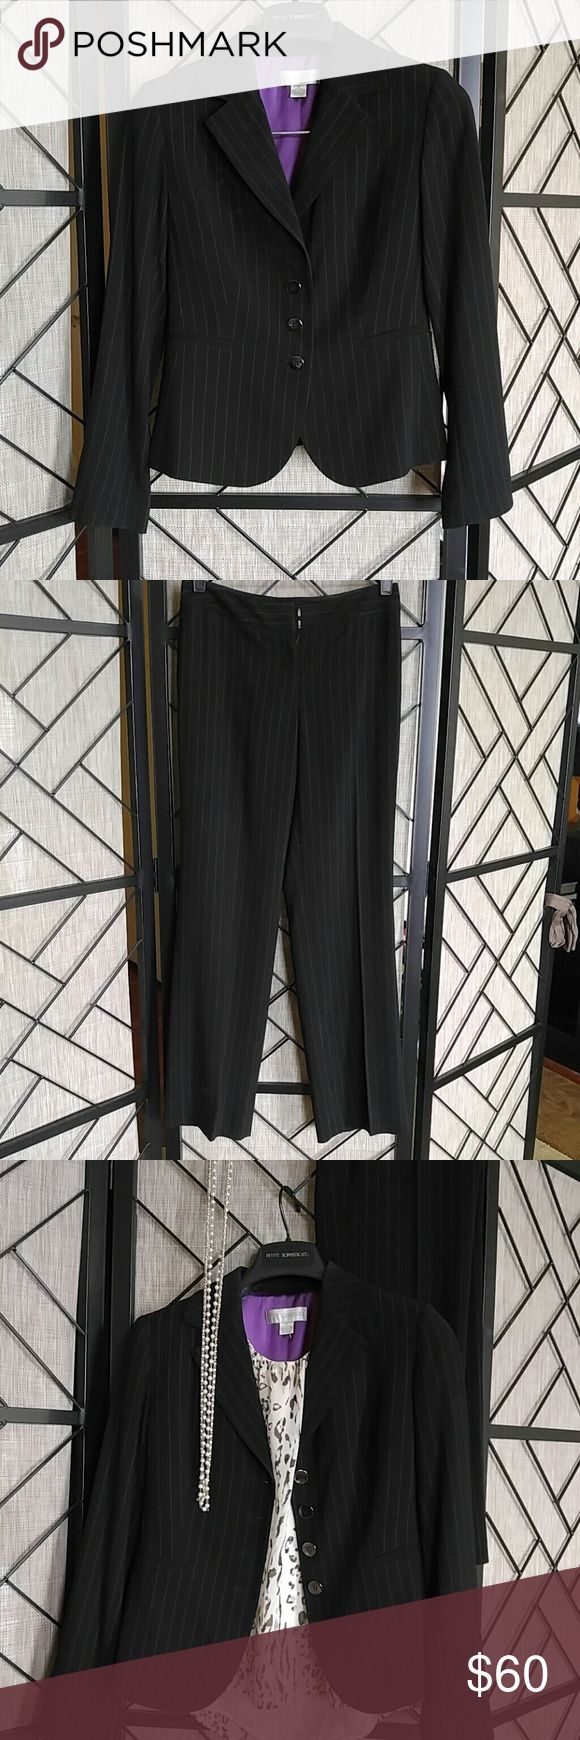 Petite Sophisticate Women's Suit Black suit with subtle pin stripes. 2 front pockets. Blazer and pants are lined. Blazer has small hole not noticeable in the top back, see pic. Overall suit looks great and is in great condition, with the exception of the small nick that would be well hidden if you wore a black or dark shirt under. Petite Sophisticate Other